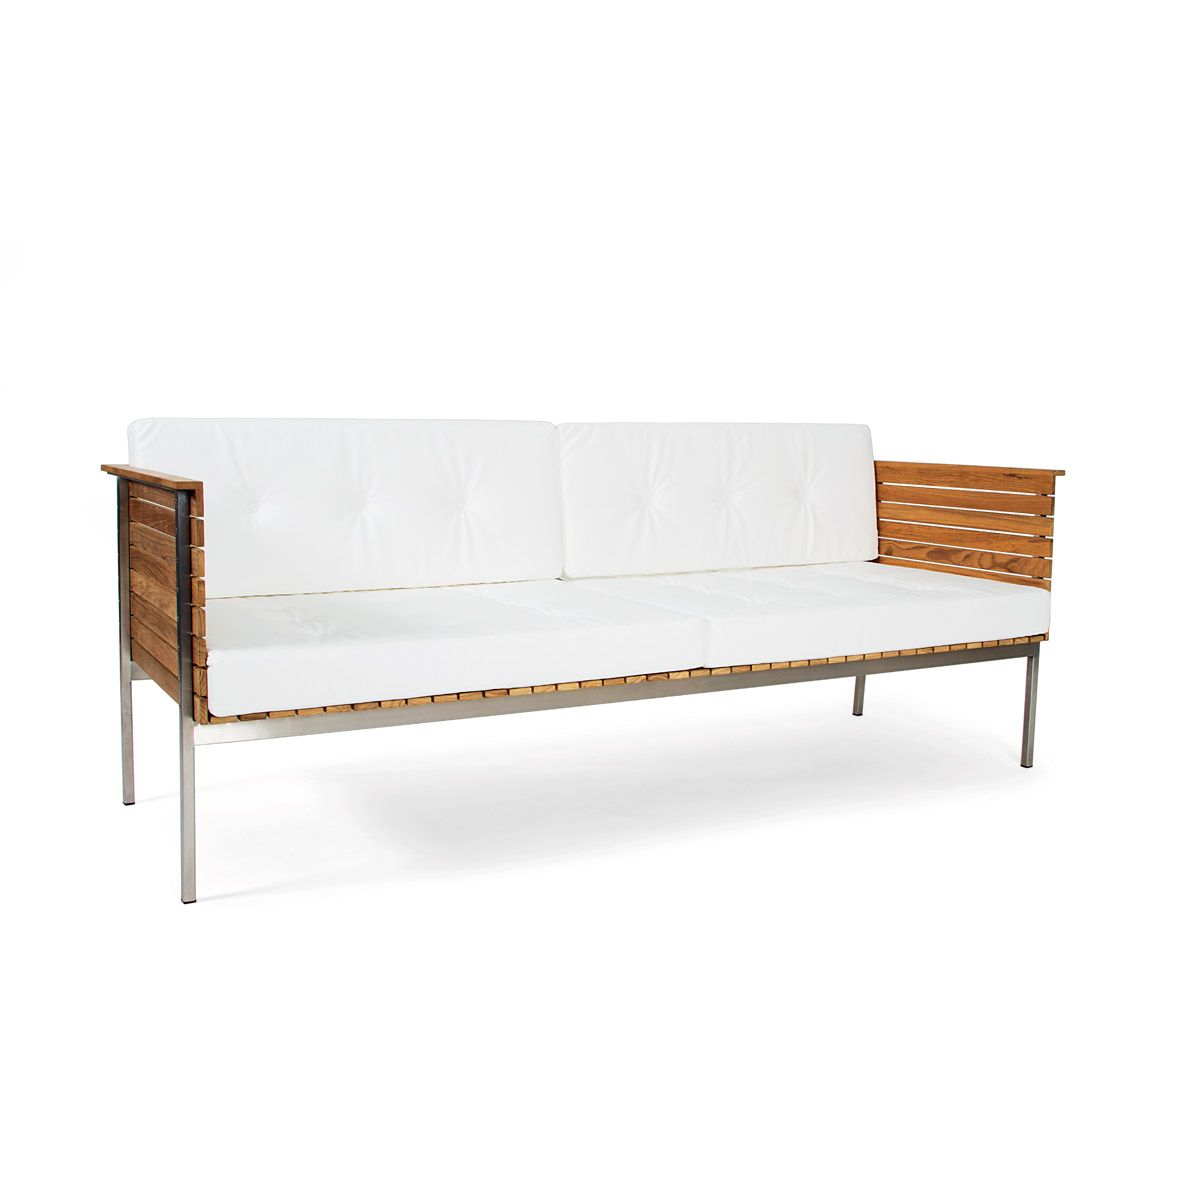 Haringe Lounge Sofa 3000 too expensive but exactly what i want